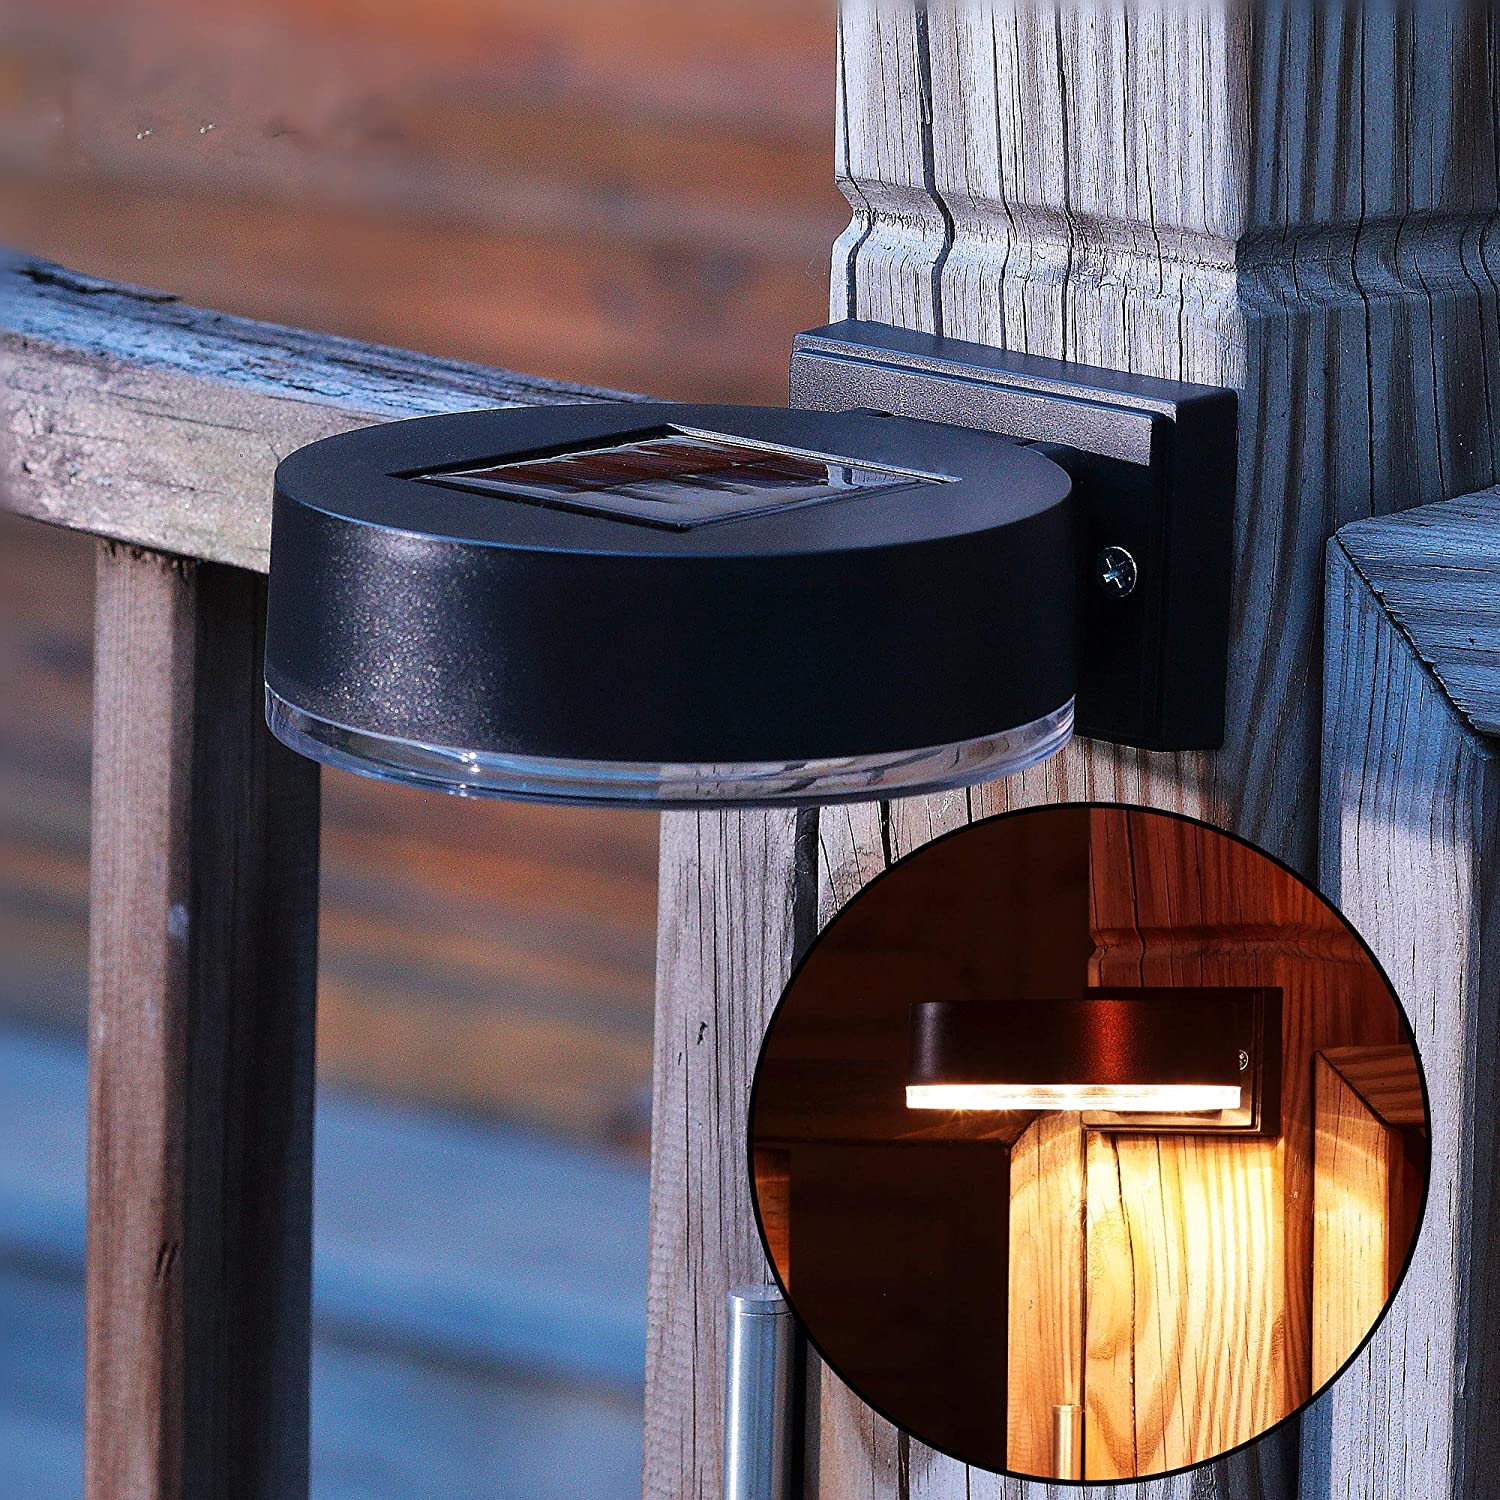 MAGGIFT 12 LEDs Solar Fence Lights Wall Mount, 10 Lumen Solar Deck Lights Solar Porch Lights Wall Sconce Warm White Lights for Outdoor, Steps, Yard, Garden, Garage, Patio, Driveway, 2 Pack